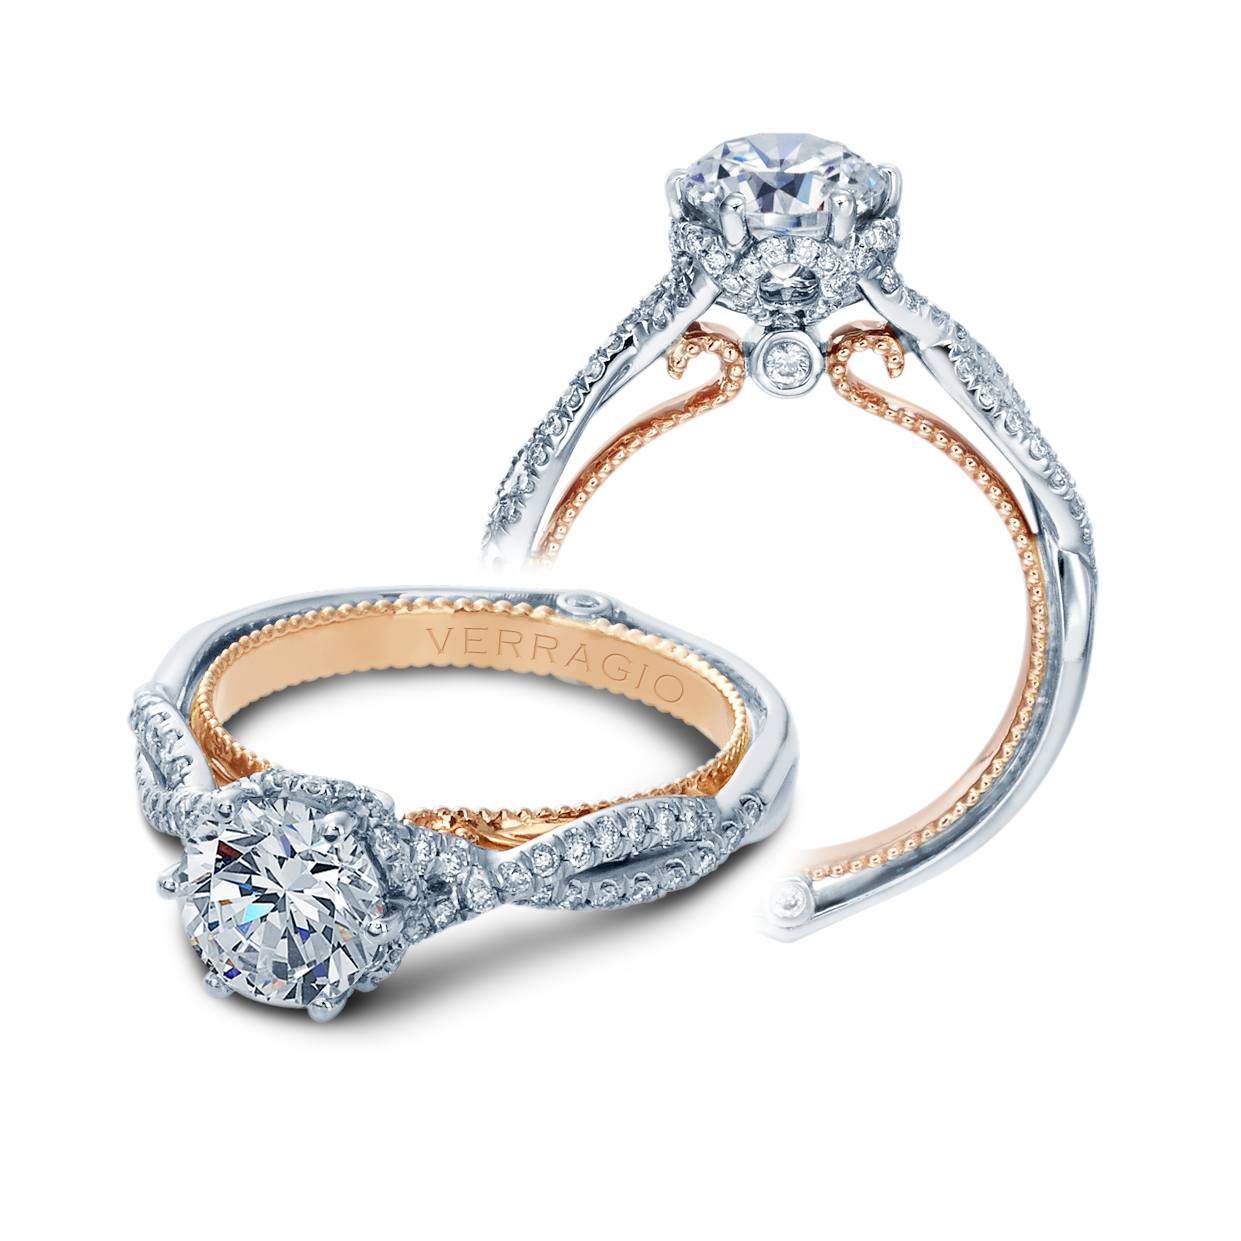 Verragio Couture-0424OV-TT Engagement Ring